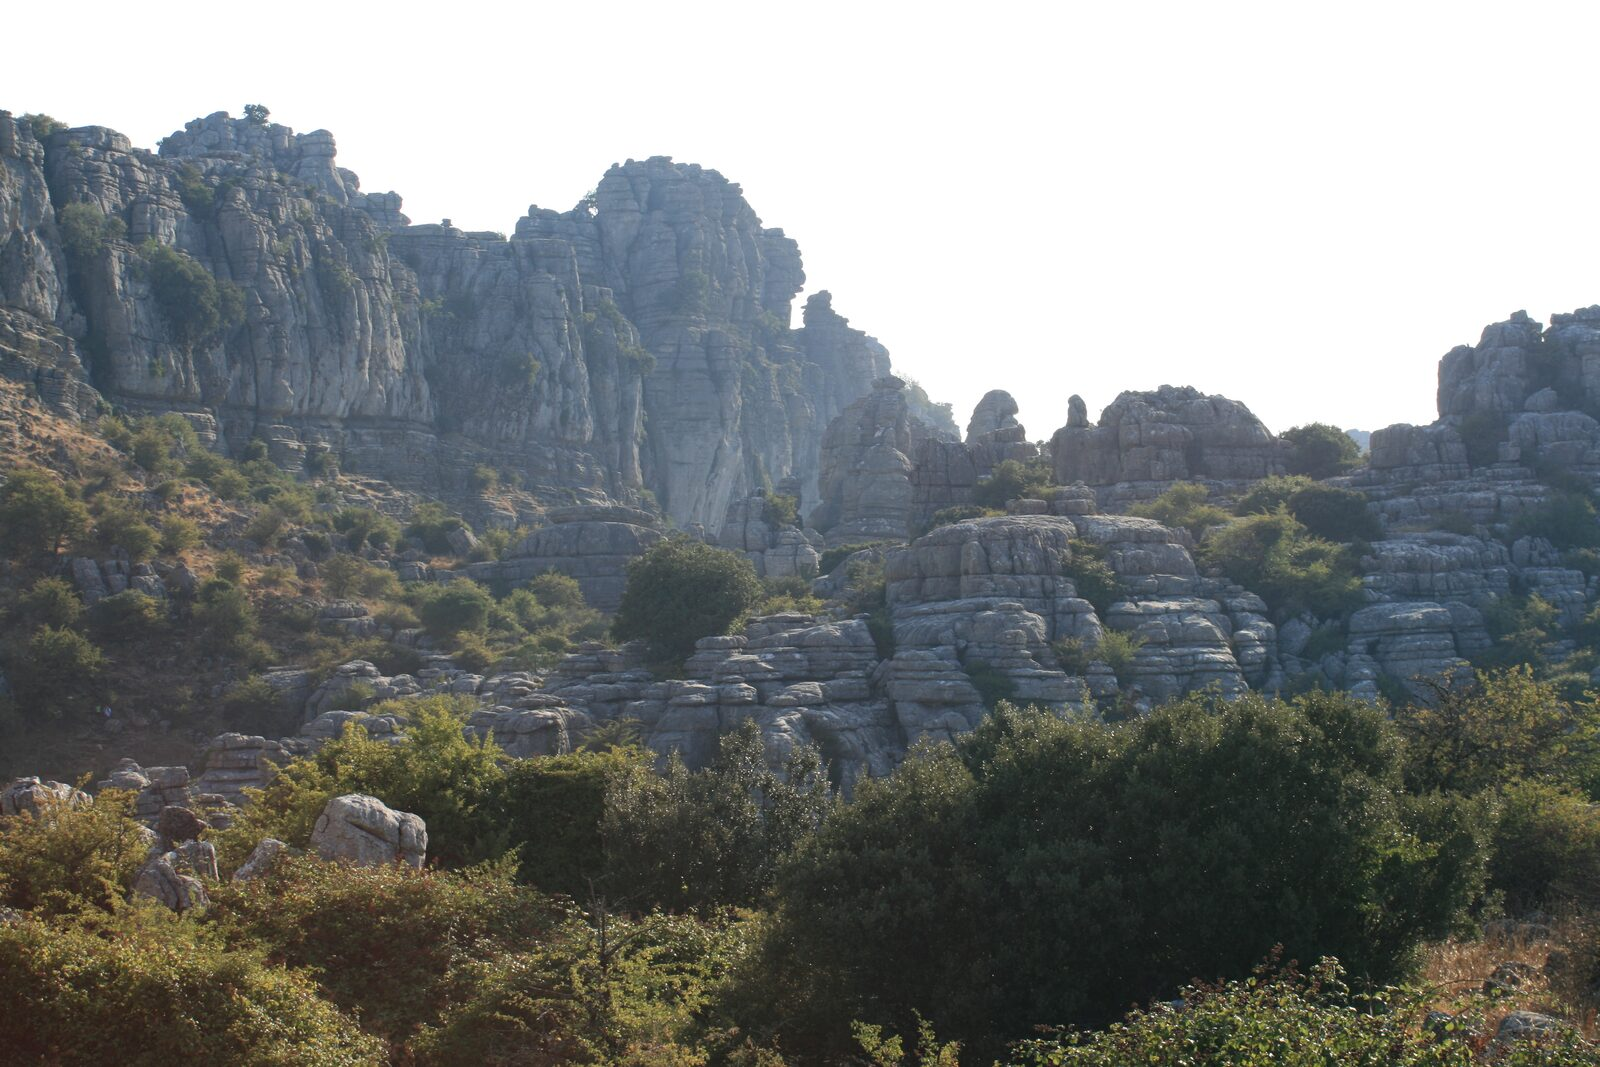 Hiking in the natural park El Torcal